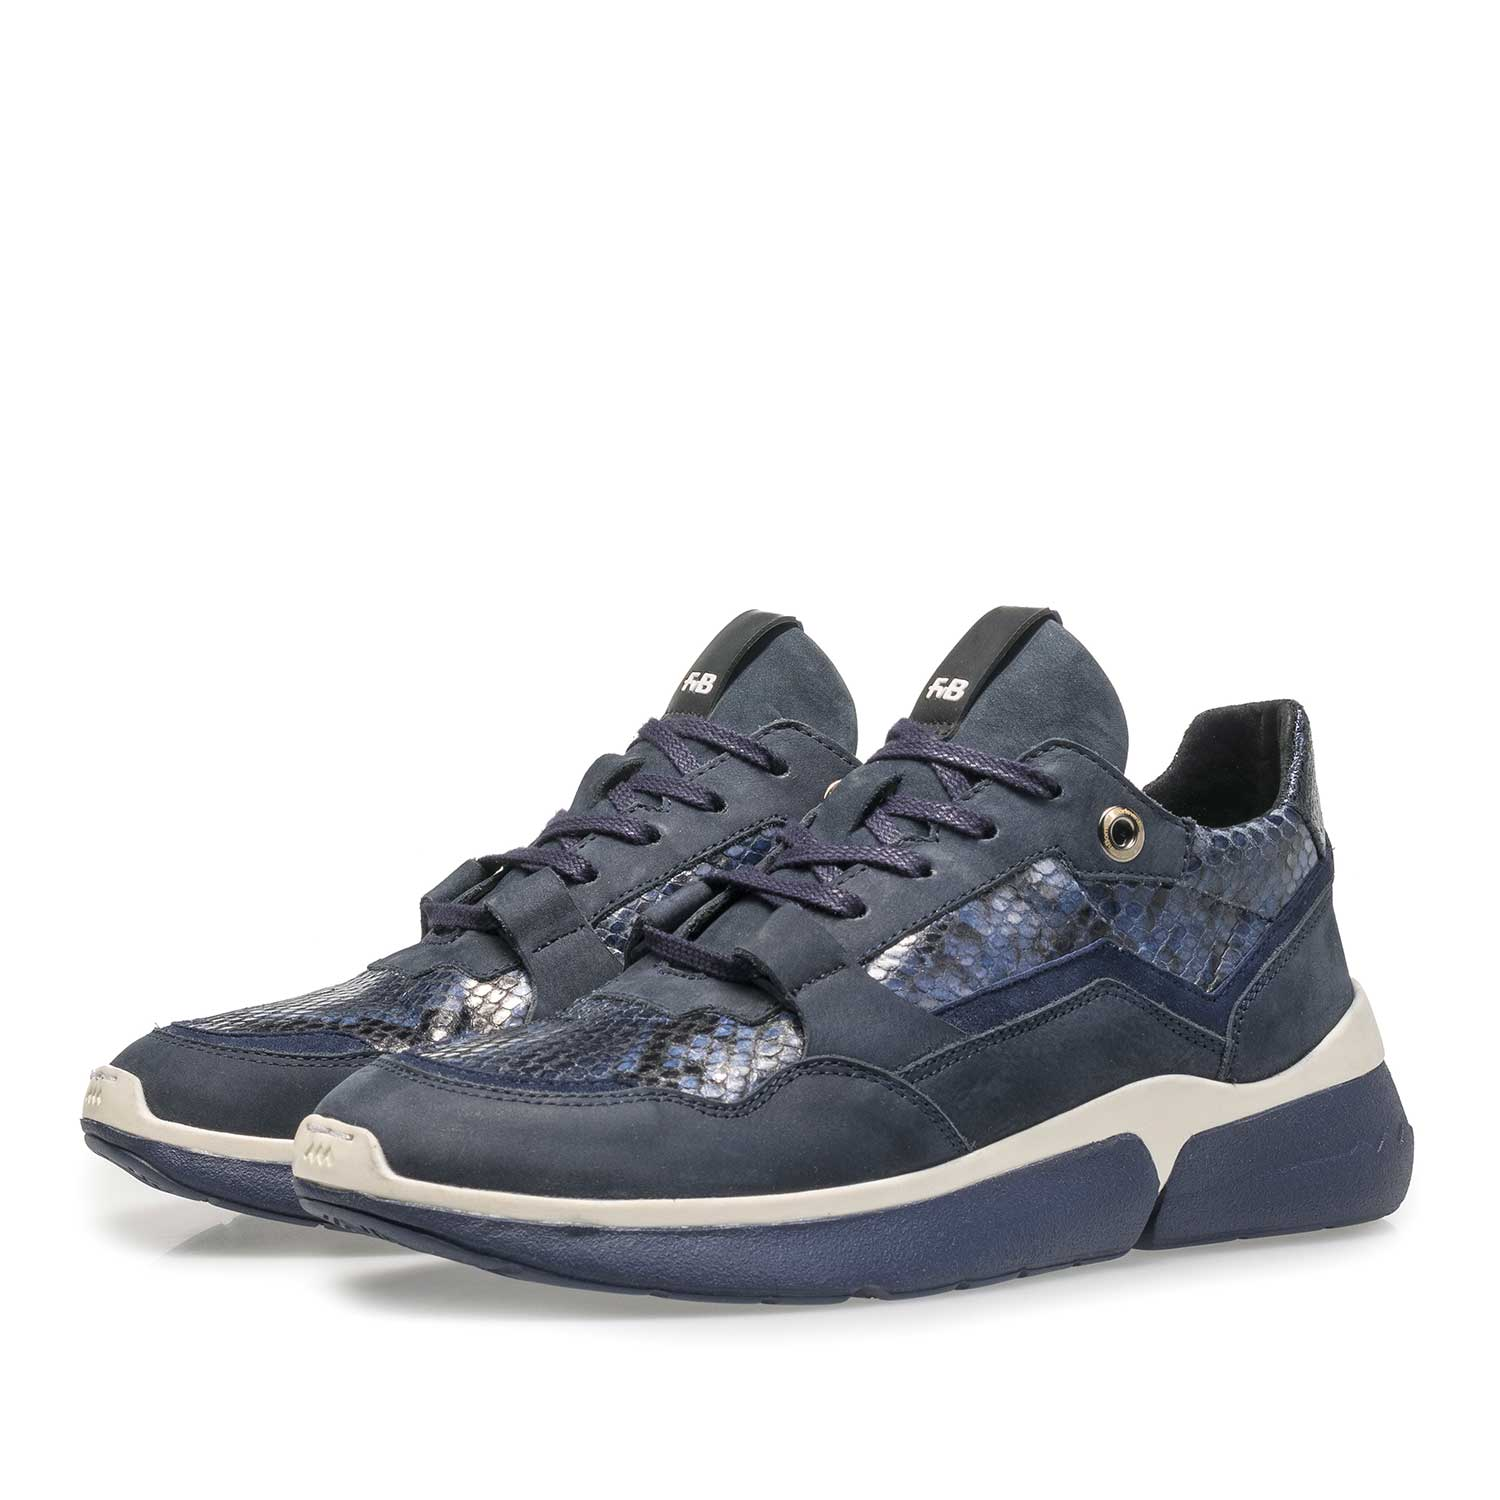 85291/03 - Blue suede leather sneaker with snake print